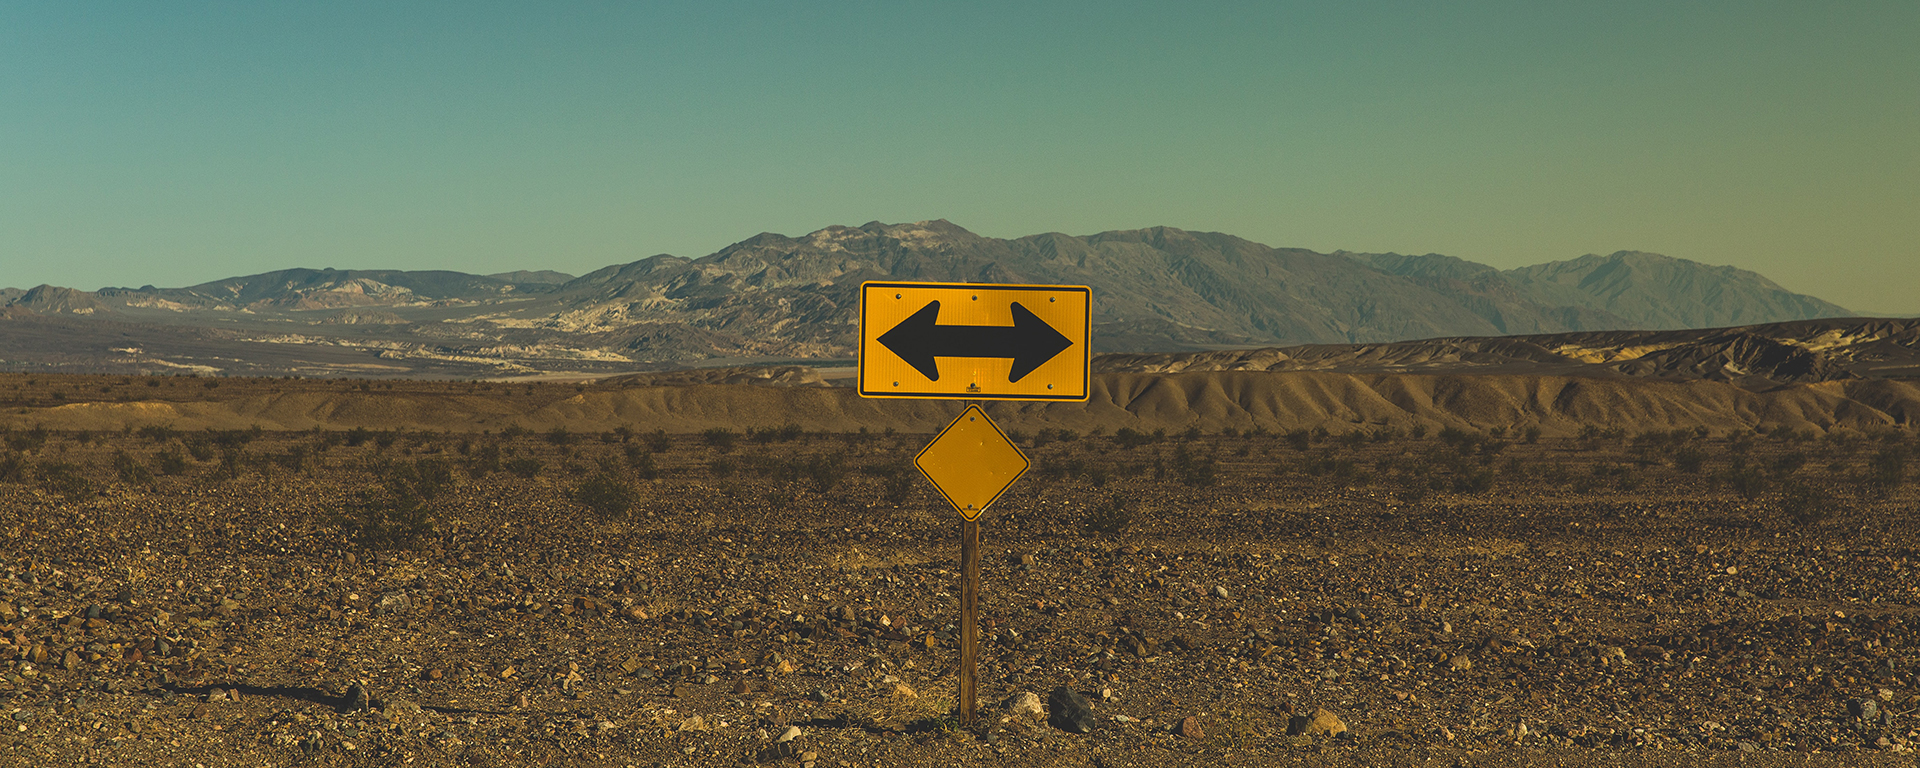 Road sign showing arrows in opposite directions